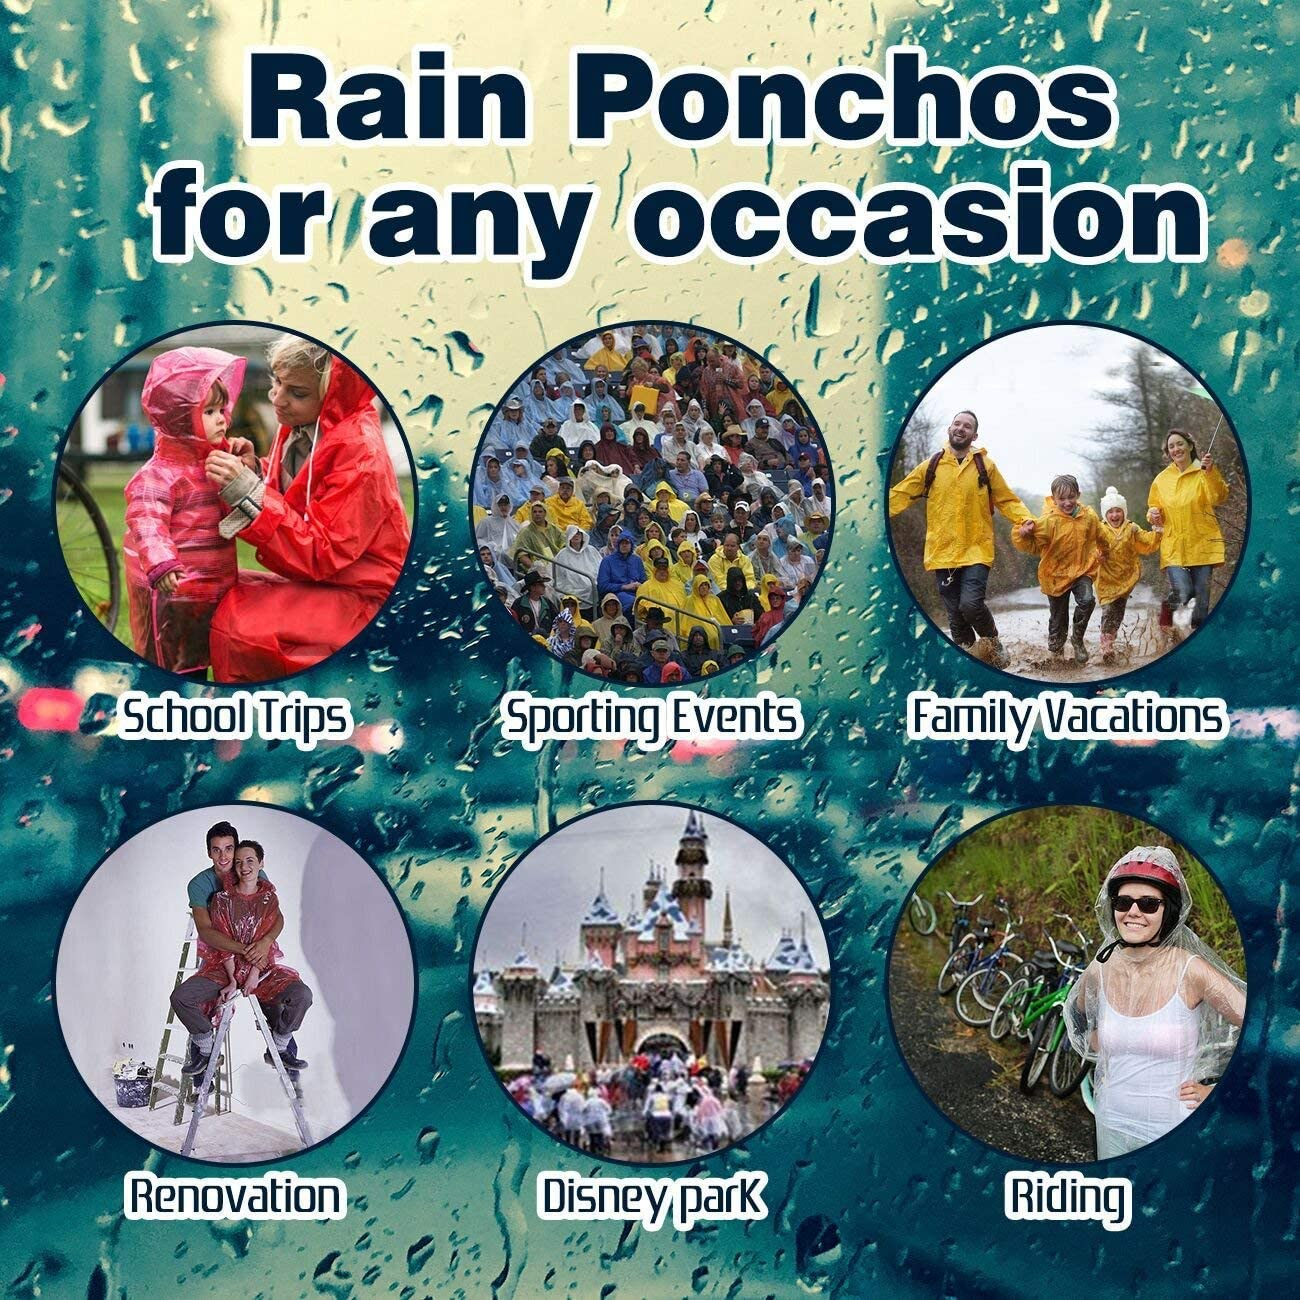 Camping EVANCE Rain Ponchos,with Drawstring Hood,Waterproof Rain Cape with Hood Hiking Fishing Disposable Emergency Rain Ponchos for Family Travel